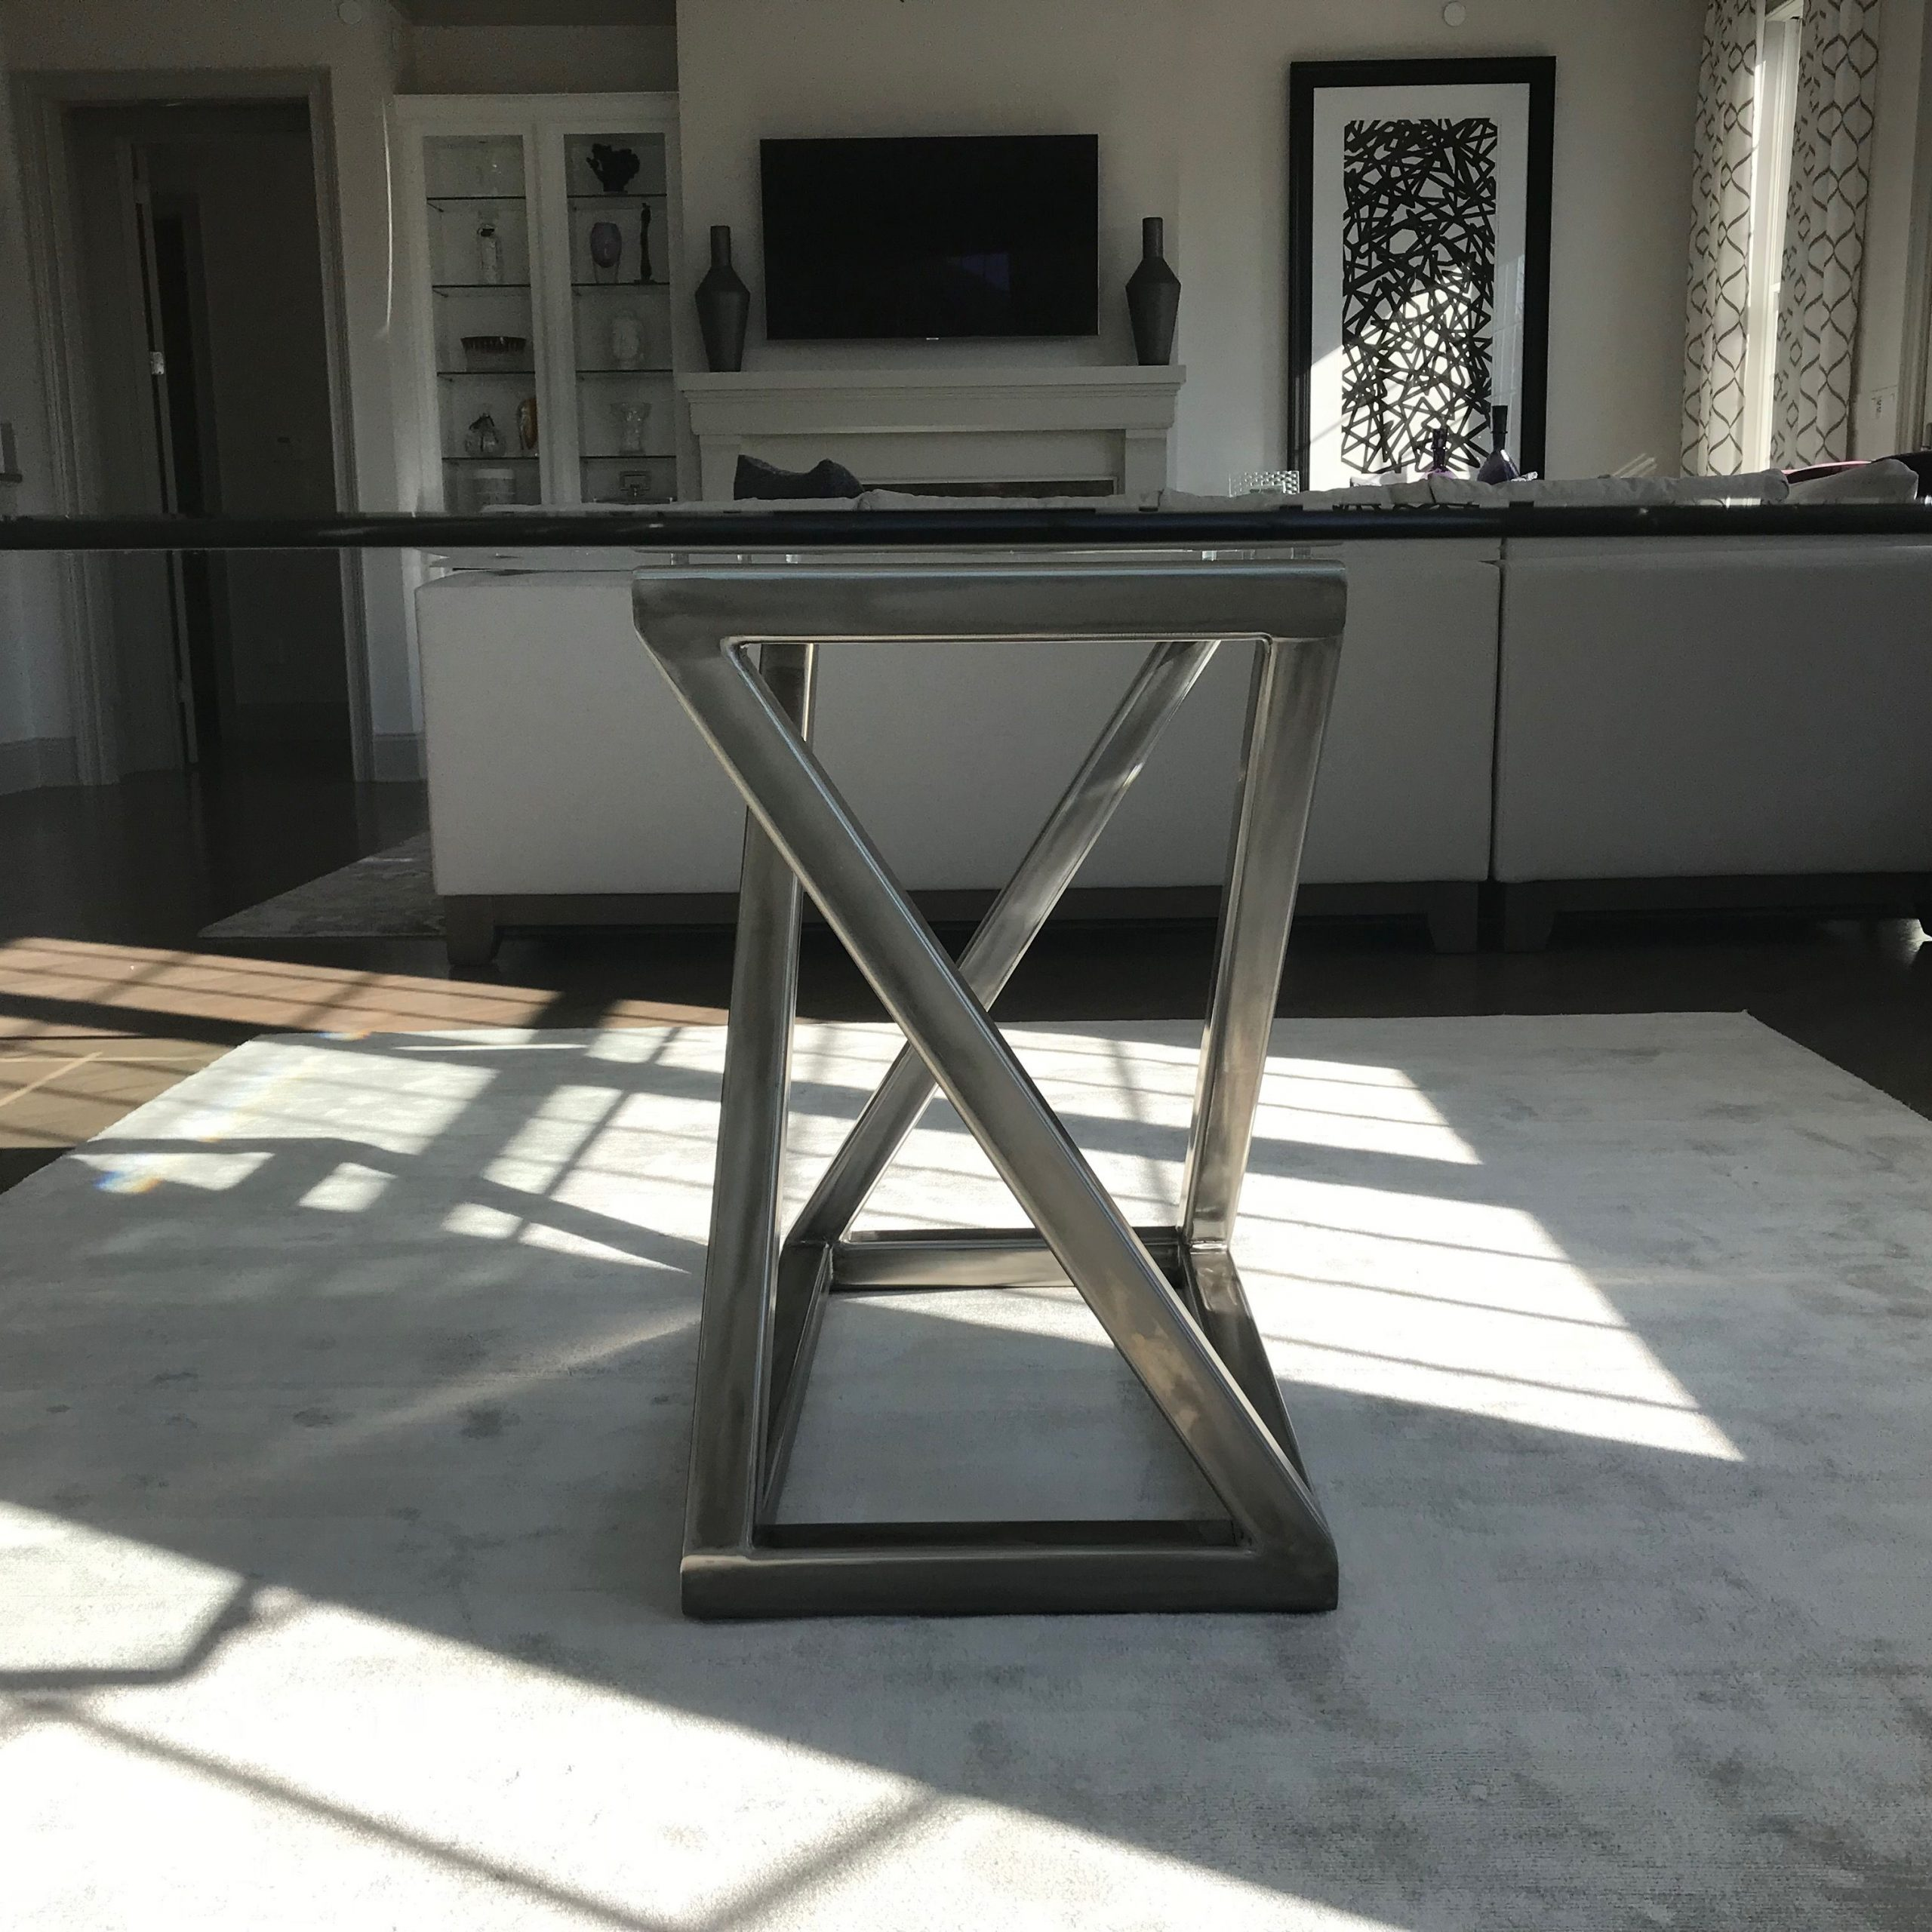 2019 Hand Made Stainless Steel Dining Table Pedestal Basee J Intended For Long Dining Tables With Polished Black Stainless Steel Base (View 13 of 25)